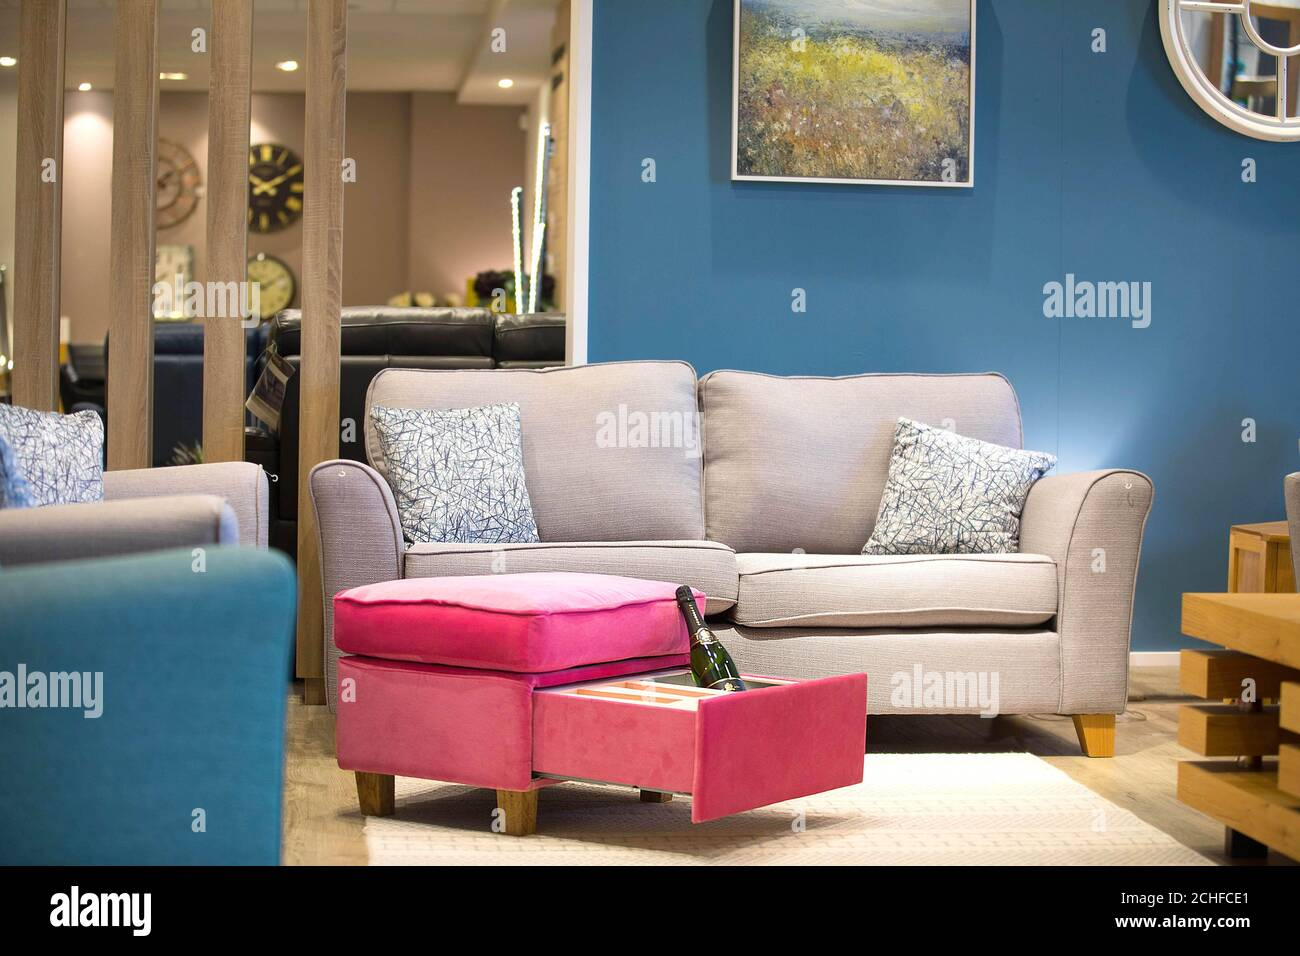 Harveys Furniture High Resolution Stock Photography And Images Alamy